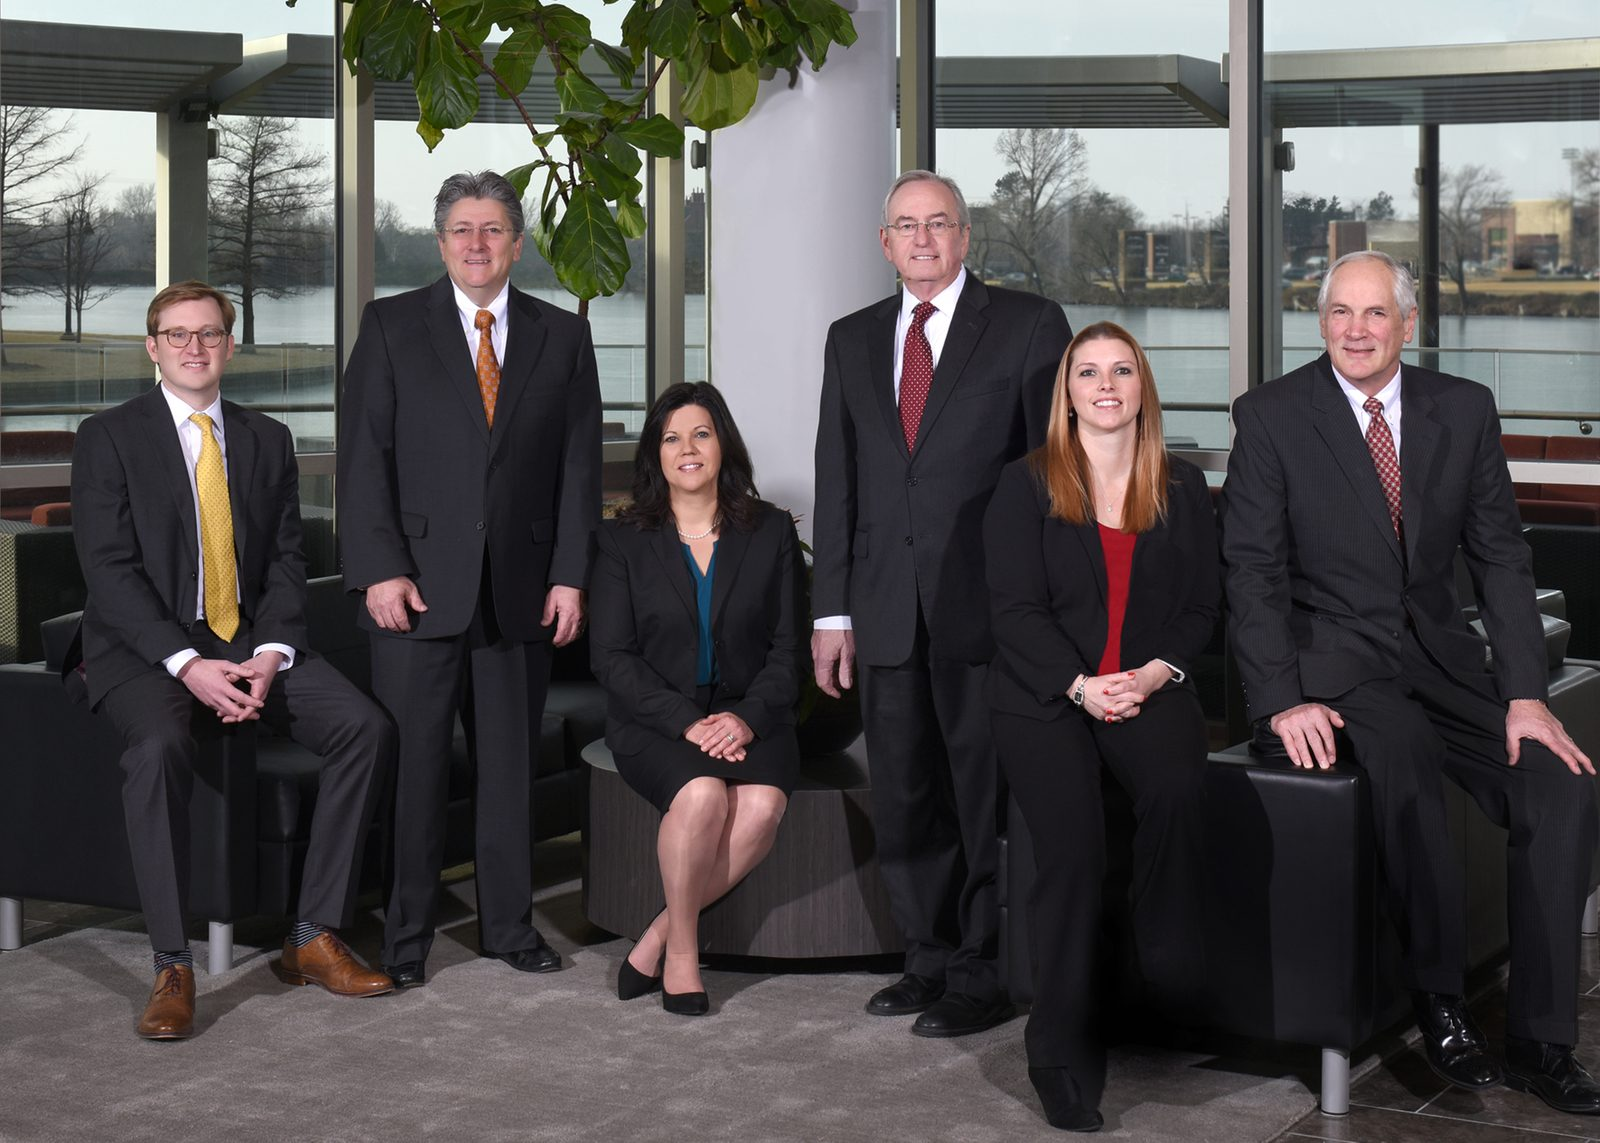 The Flint Hills Group | Wichita, KS | Morgan Stanley Wealth